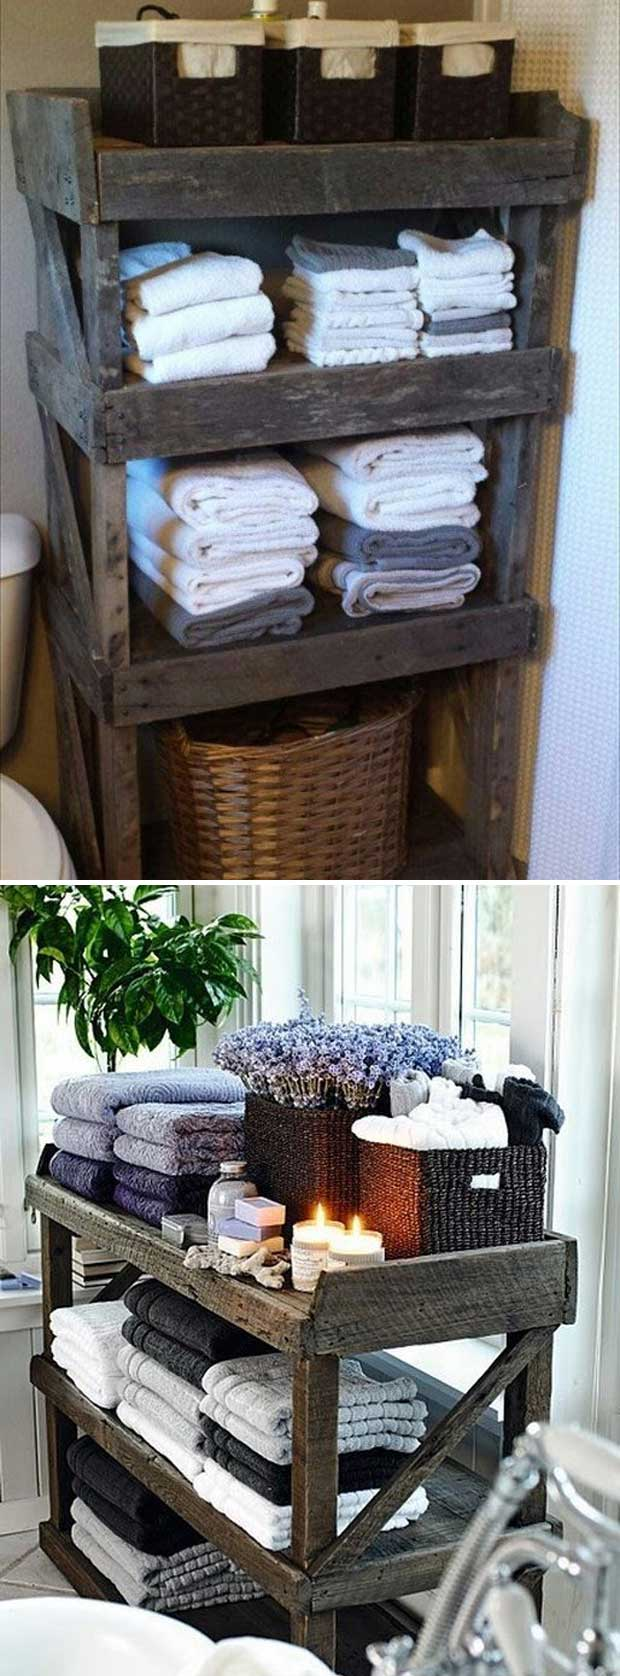 Rustic Wood Bathroom Storage.